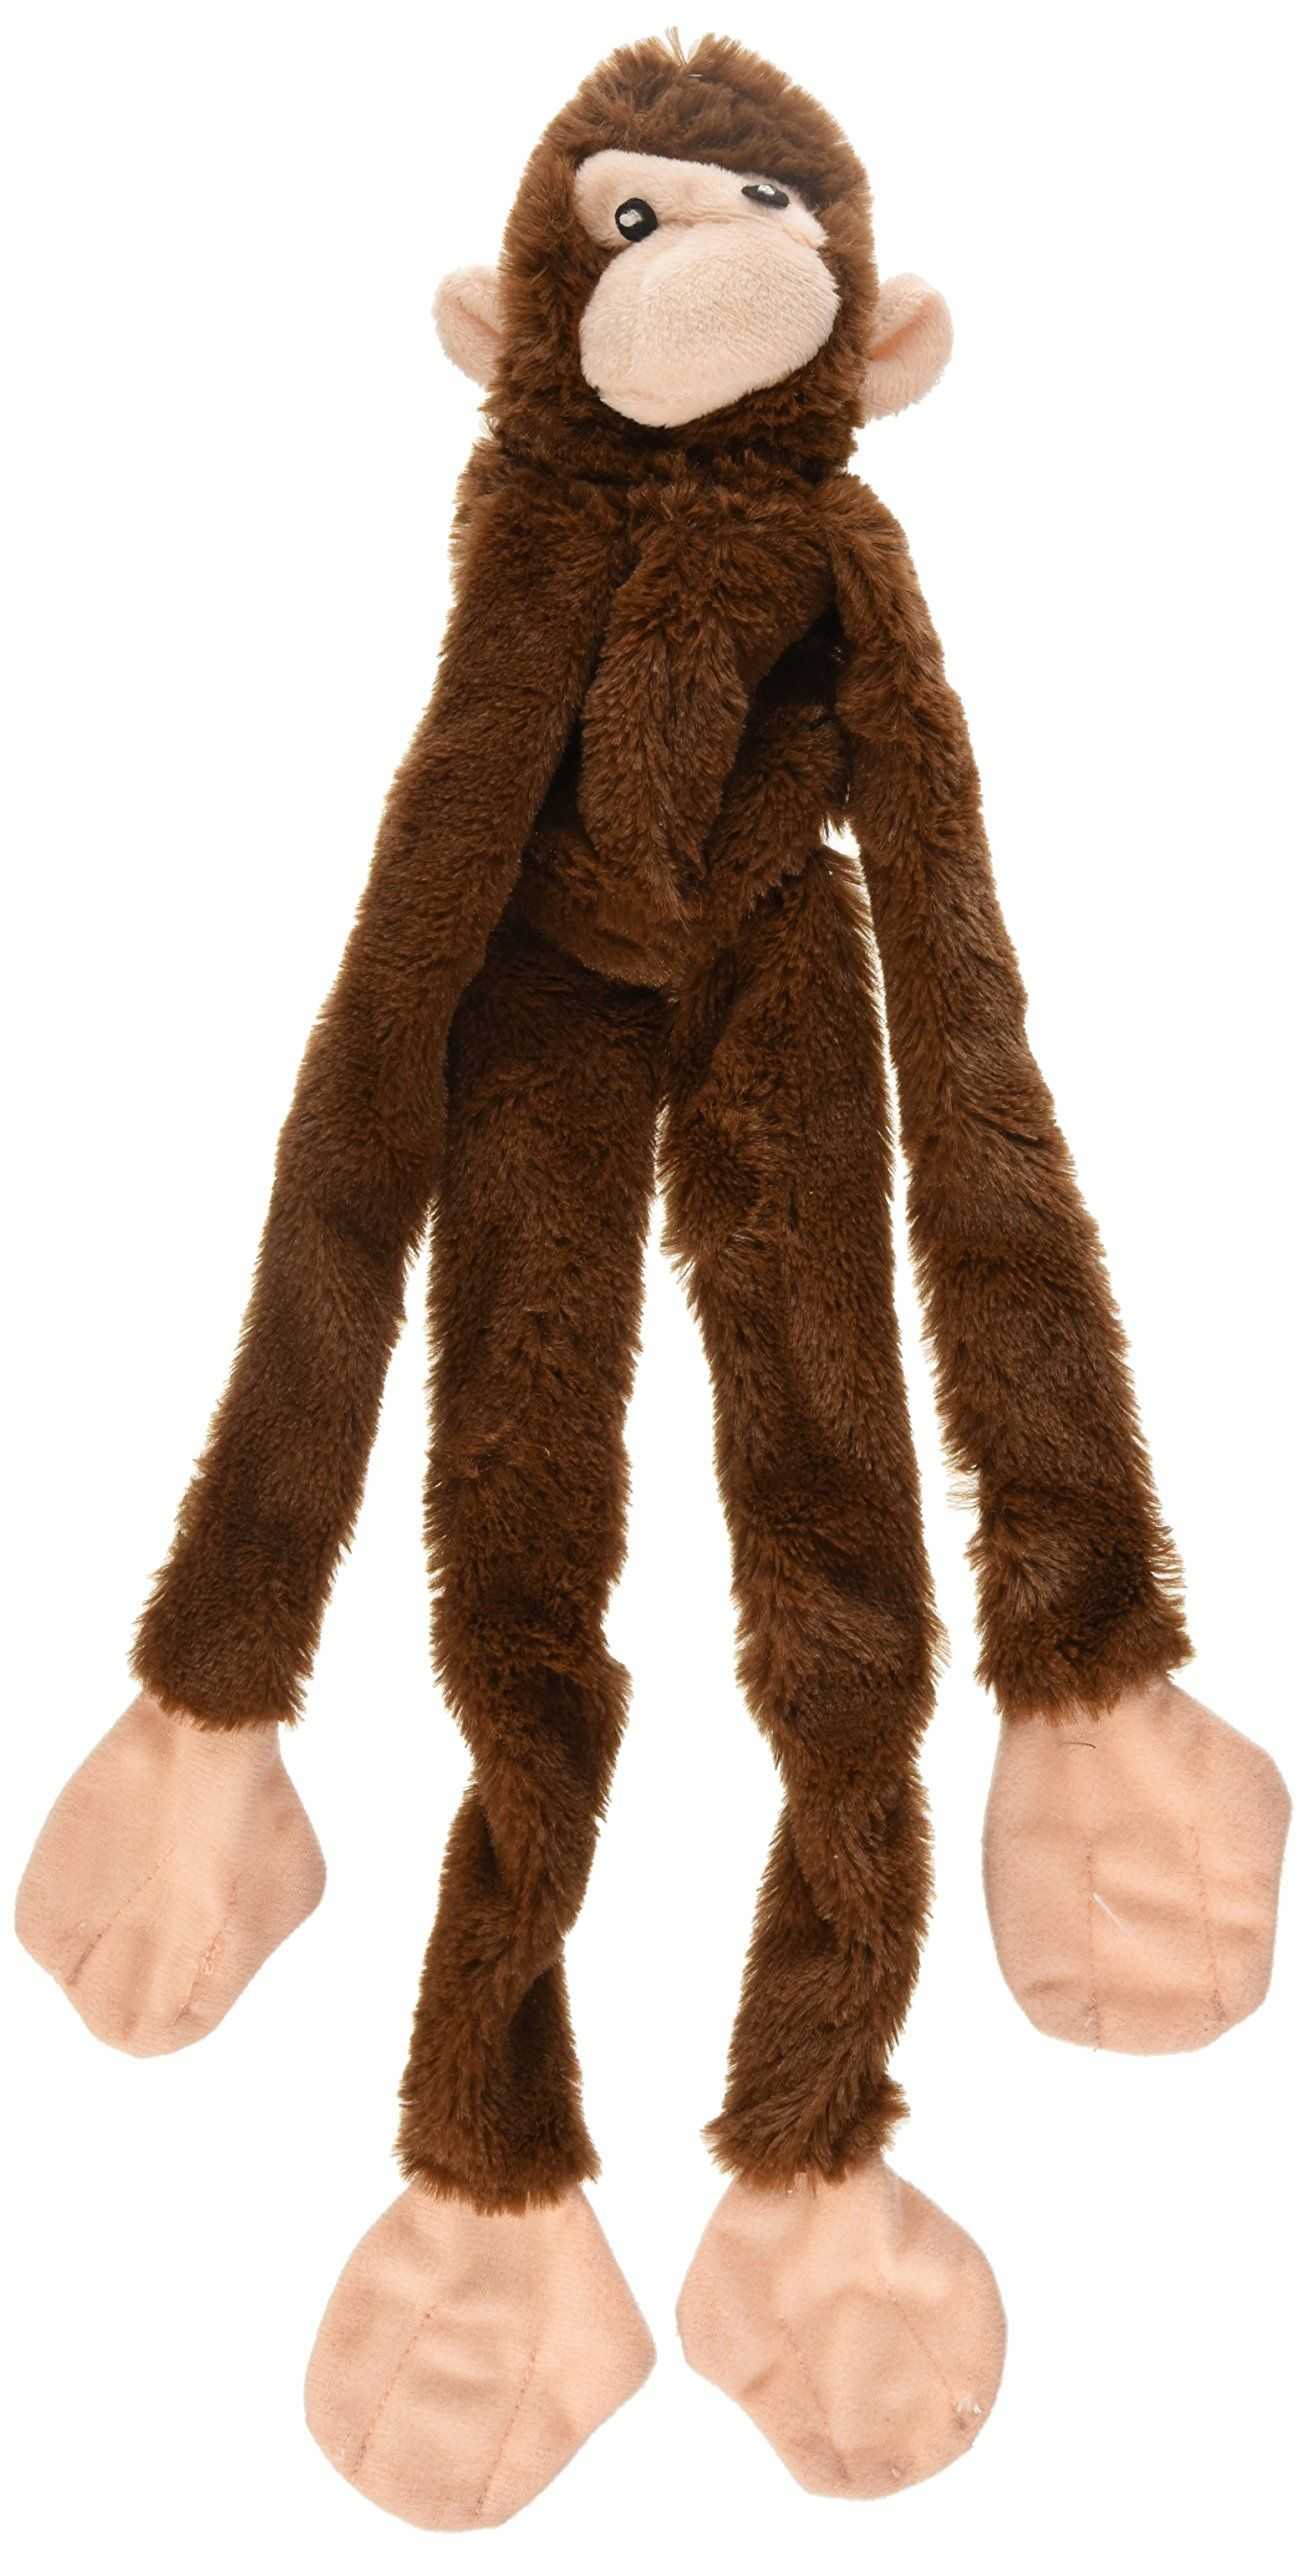 Ethical Plush Skinneeez Monkey Ast 16inch Stuffingless Dog Toy